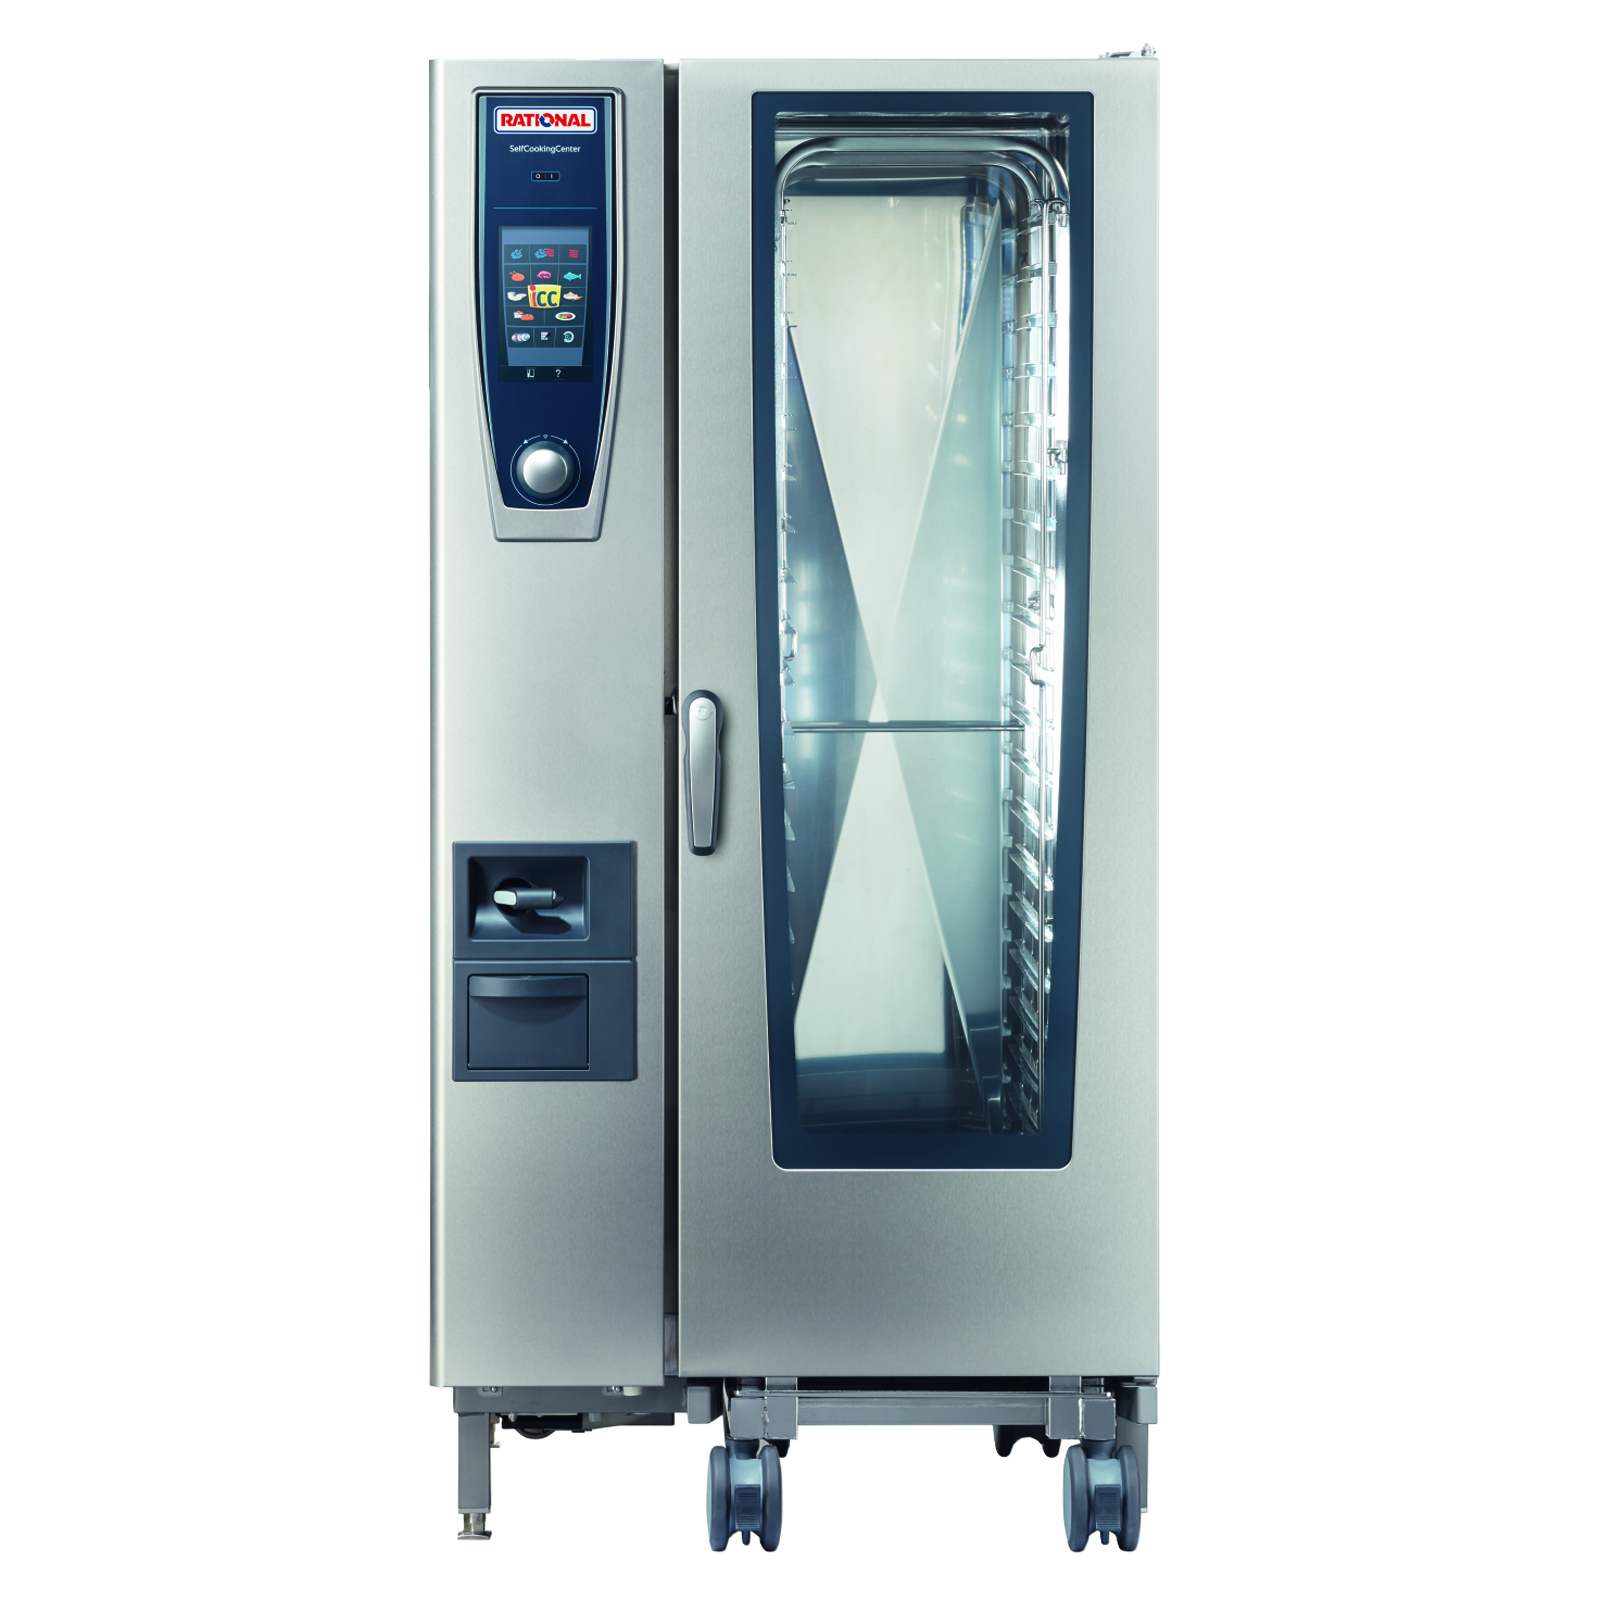 RATIONAL B218206.19E combi oven, gas